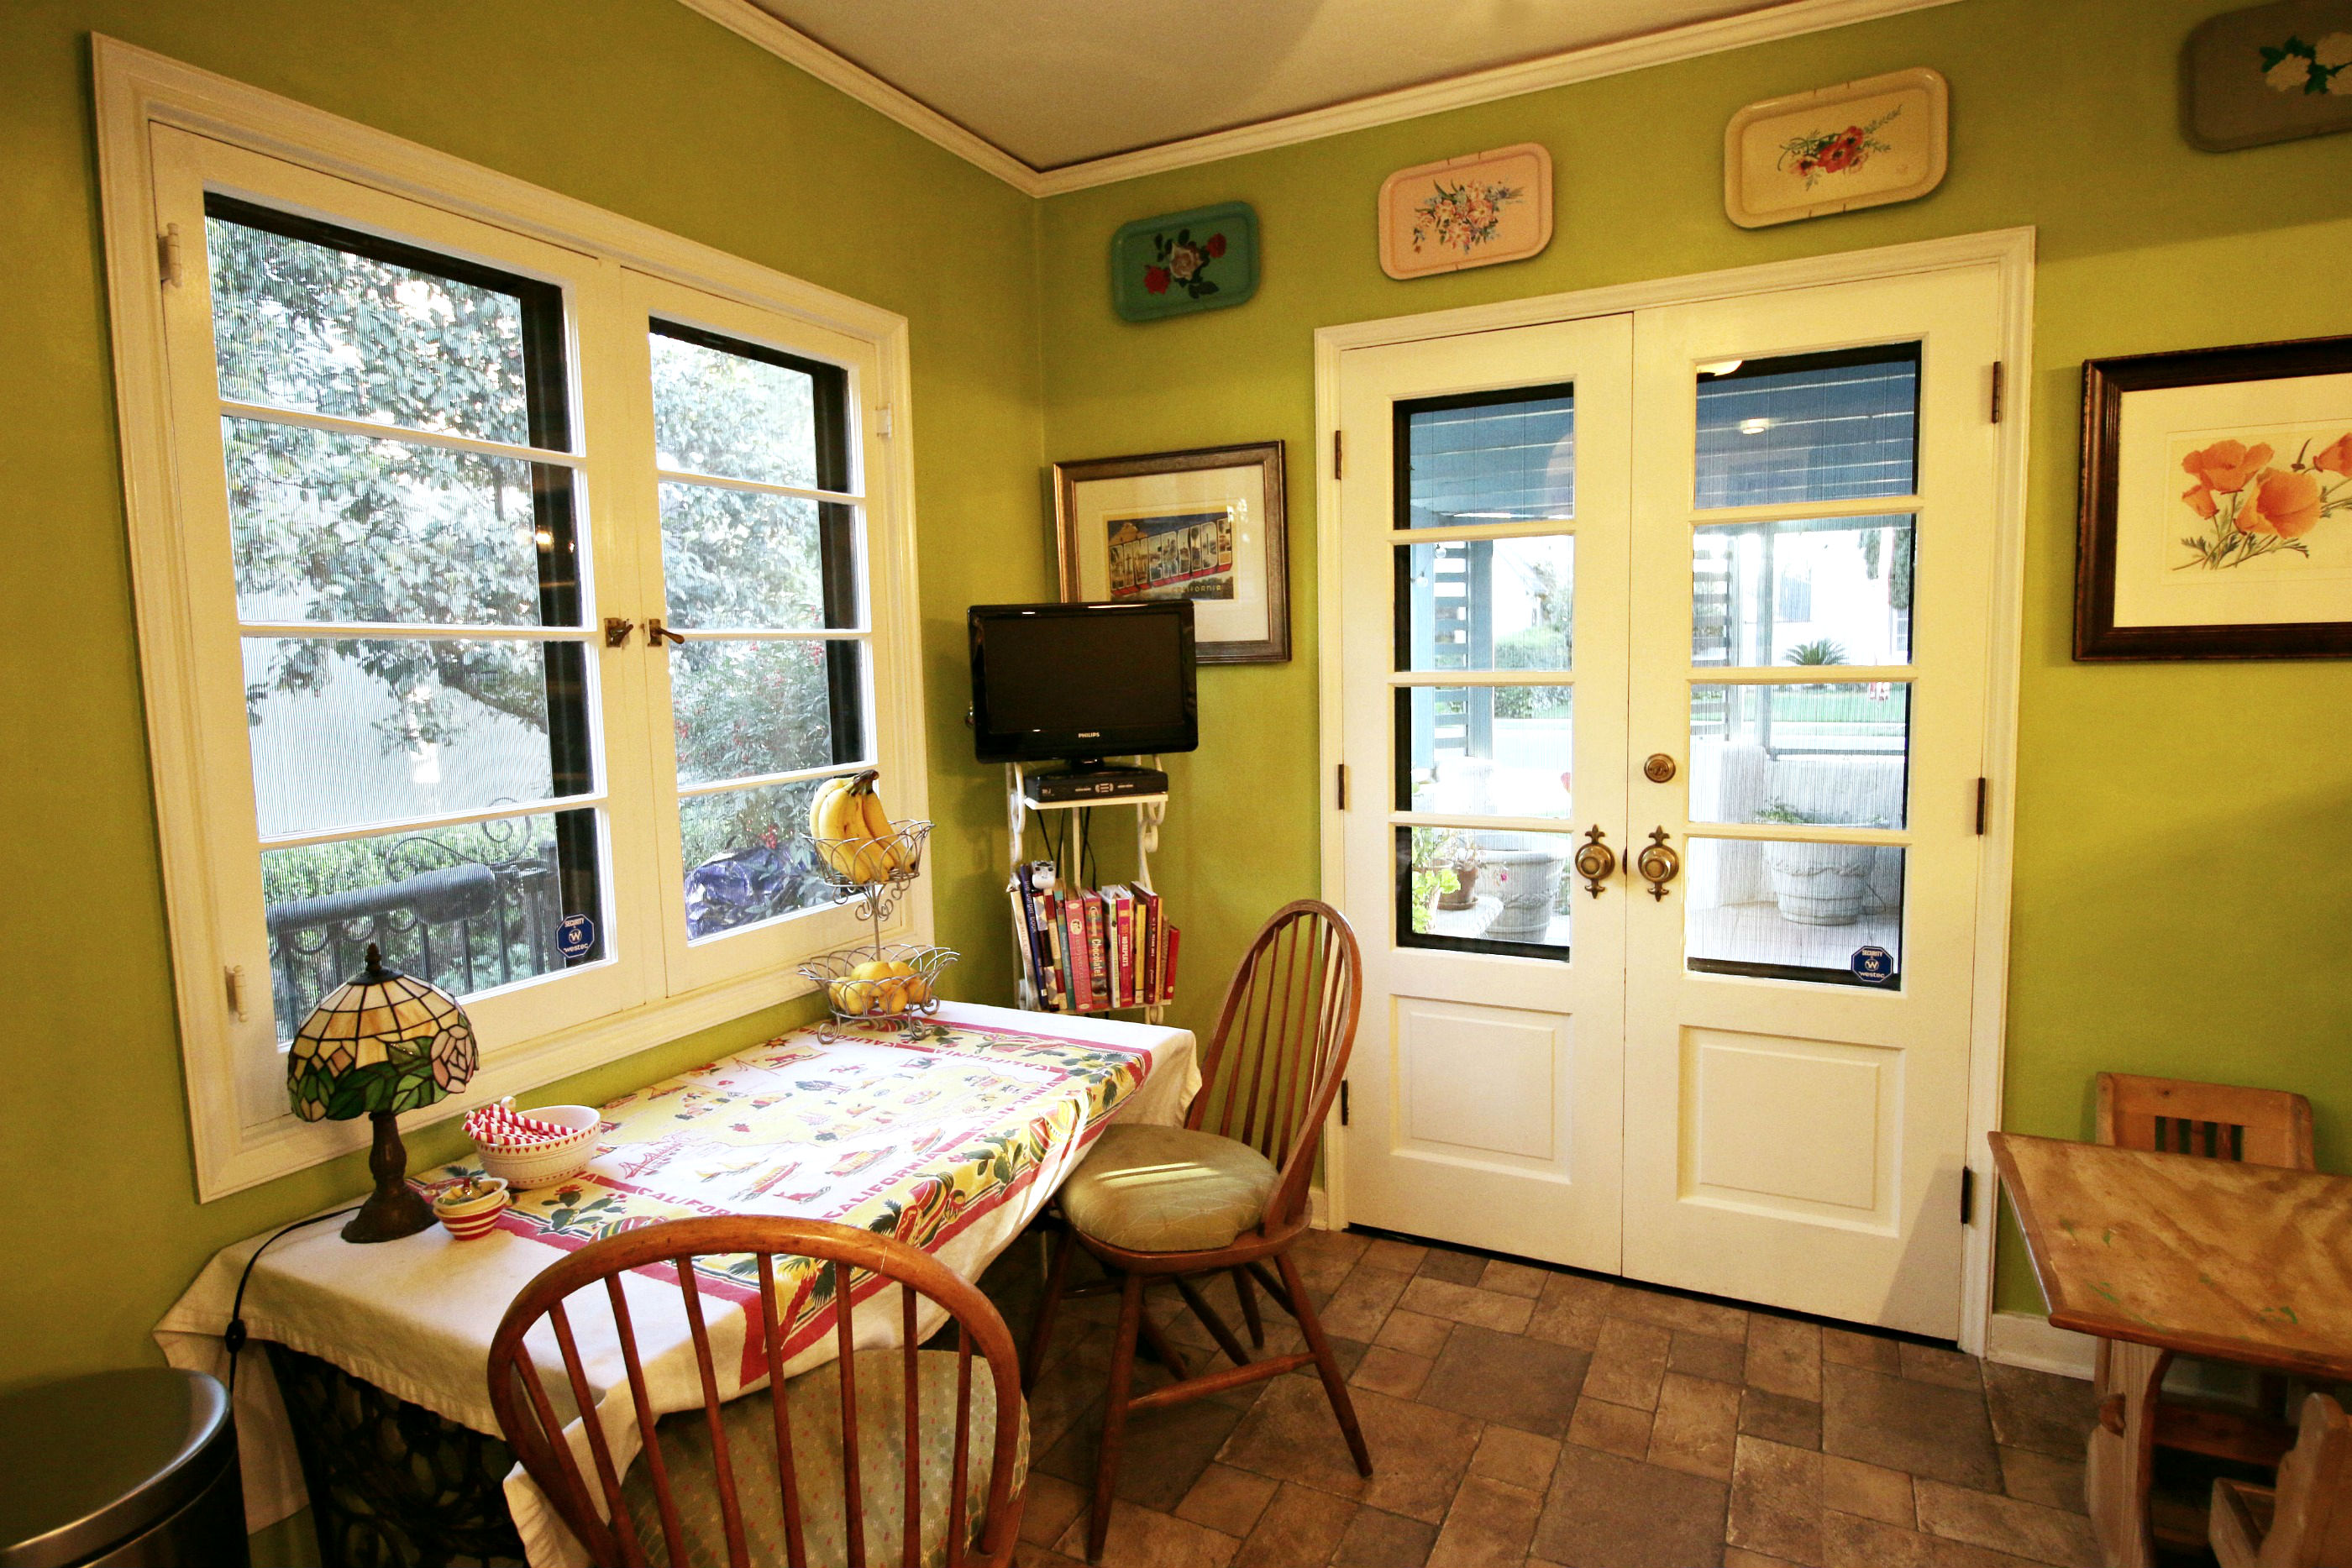 Nook area with original French doors leading to front patio for year-round Southern California al fresco dining.